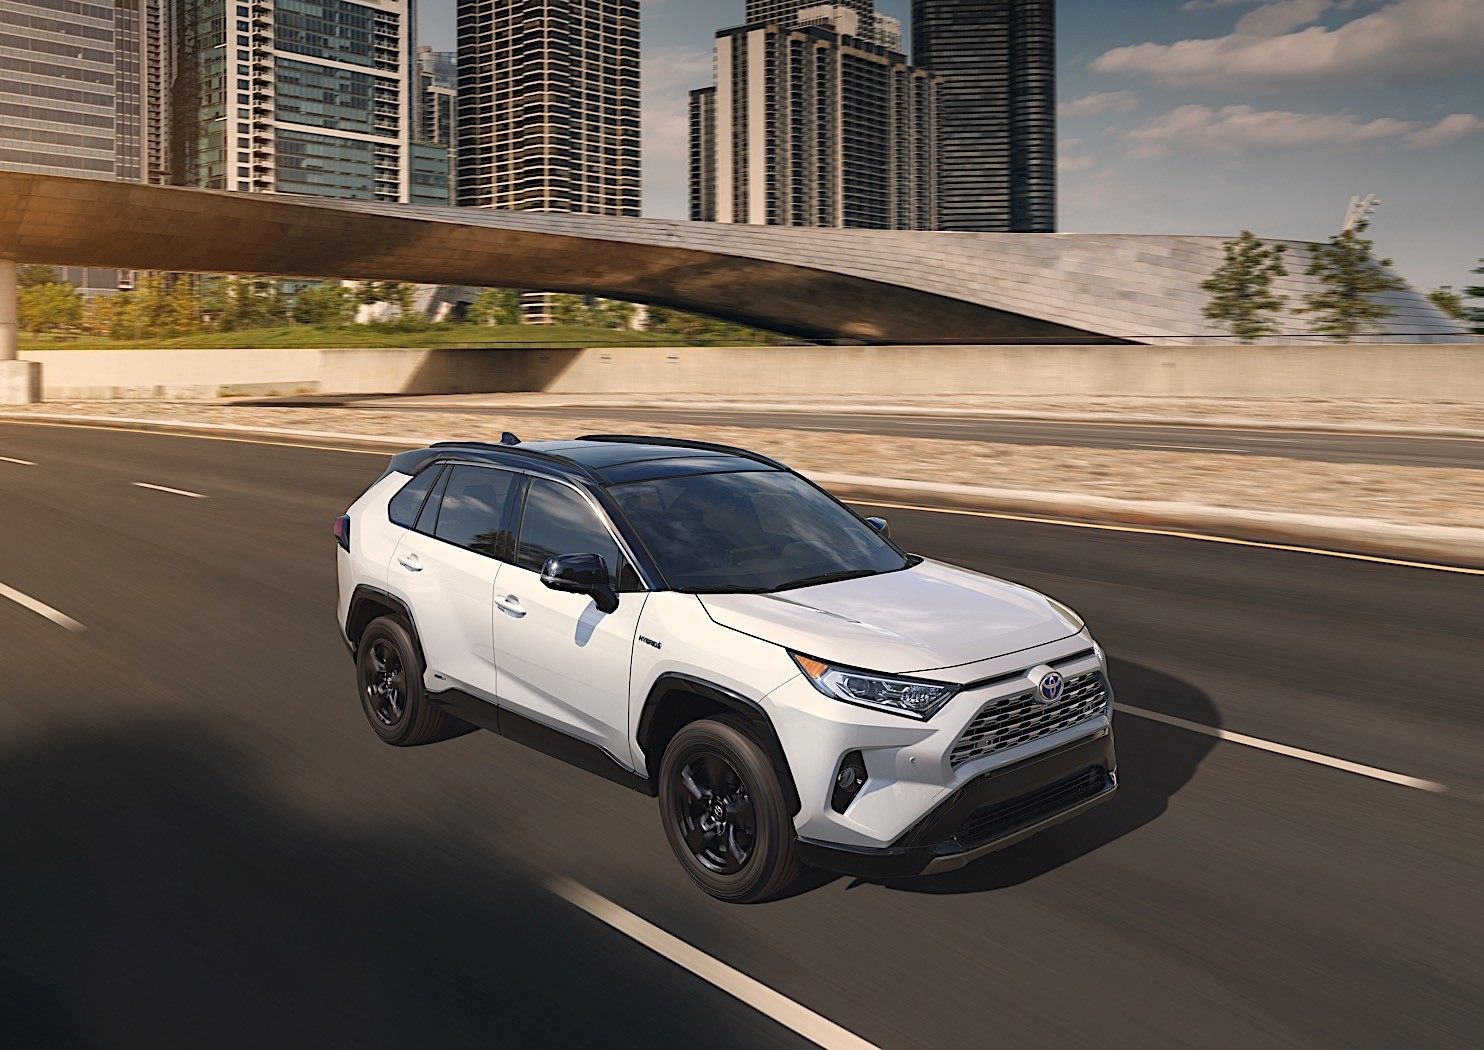 Toyota Believes Compact SUV Demand Will Exceed the Camry by 2020 - autoevolution